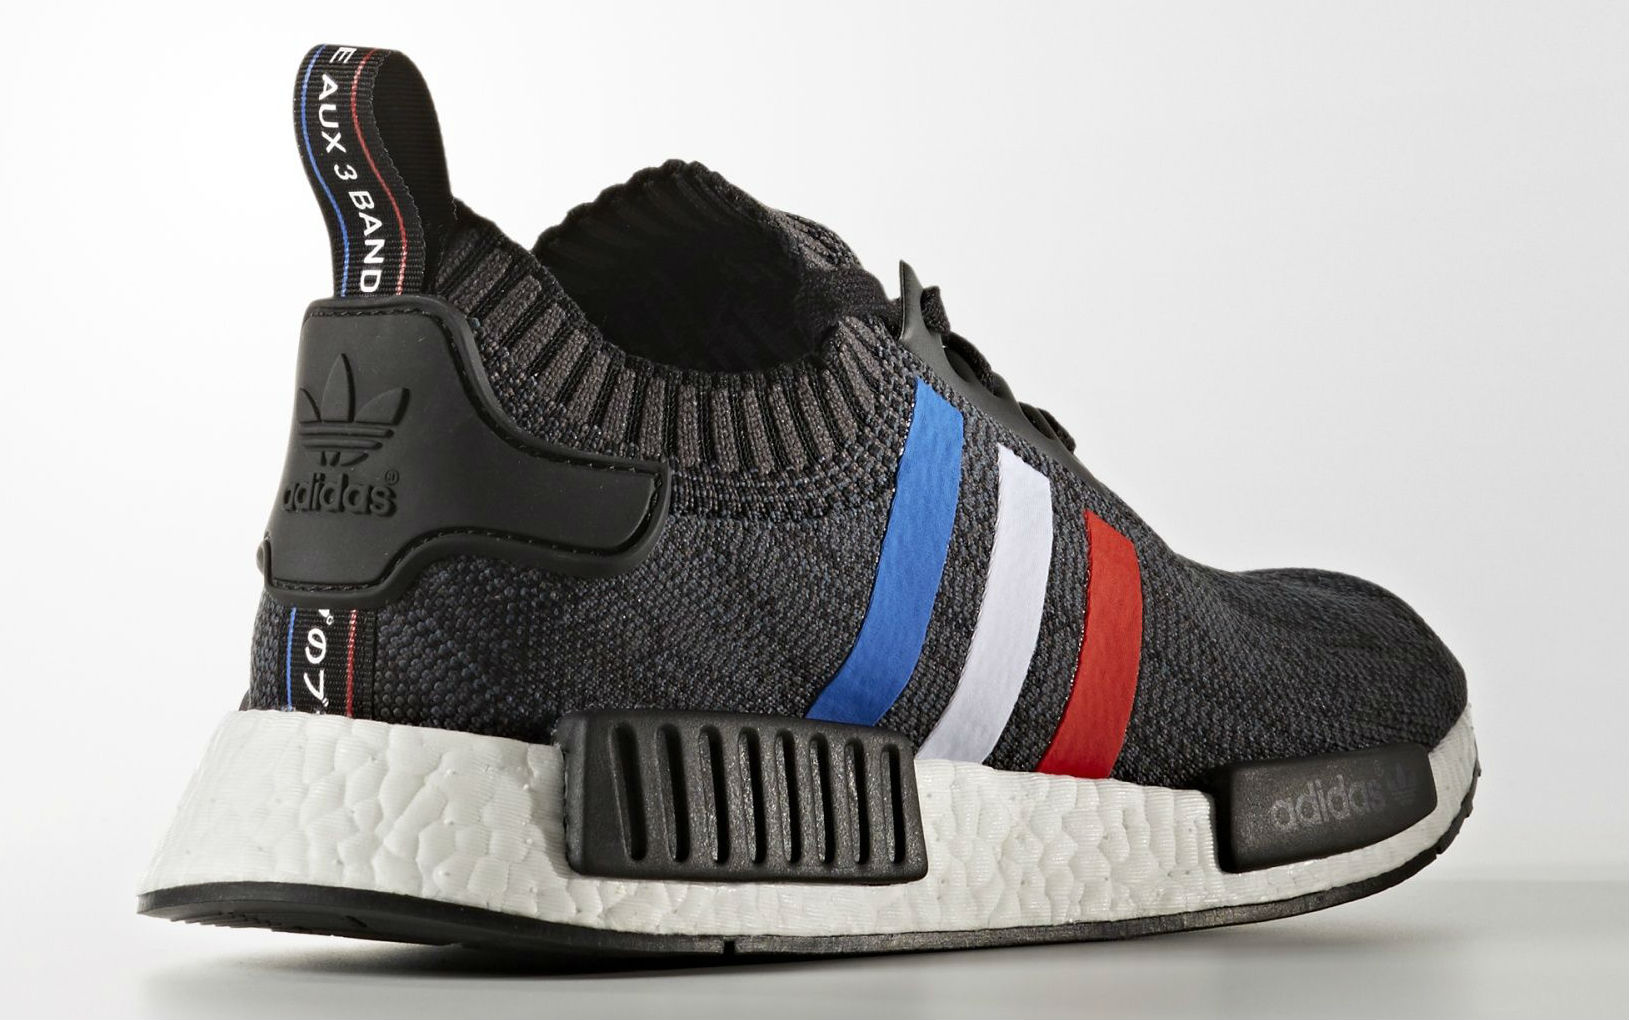 meet 4061e 88481 germany adidas nmd runner pk black red blue flag a2555 916b6